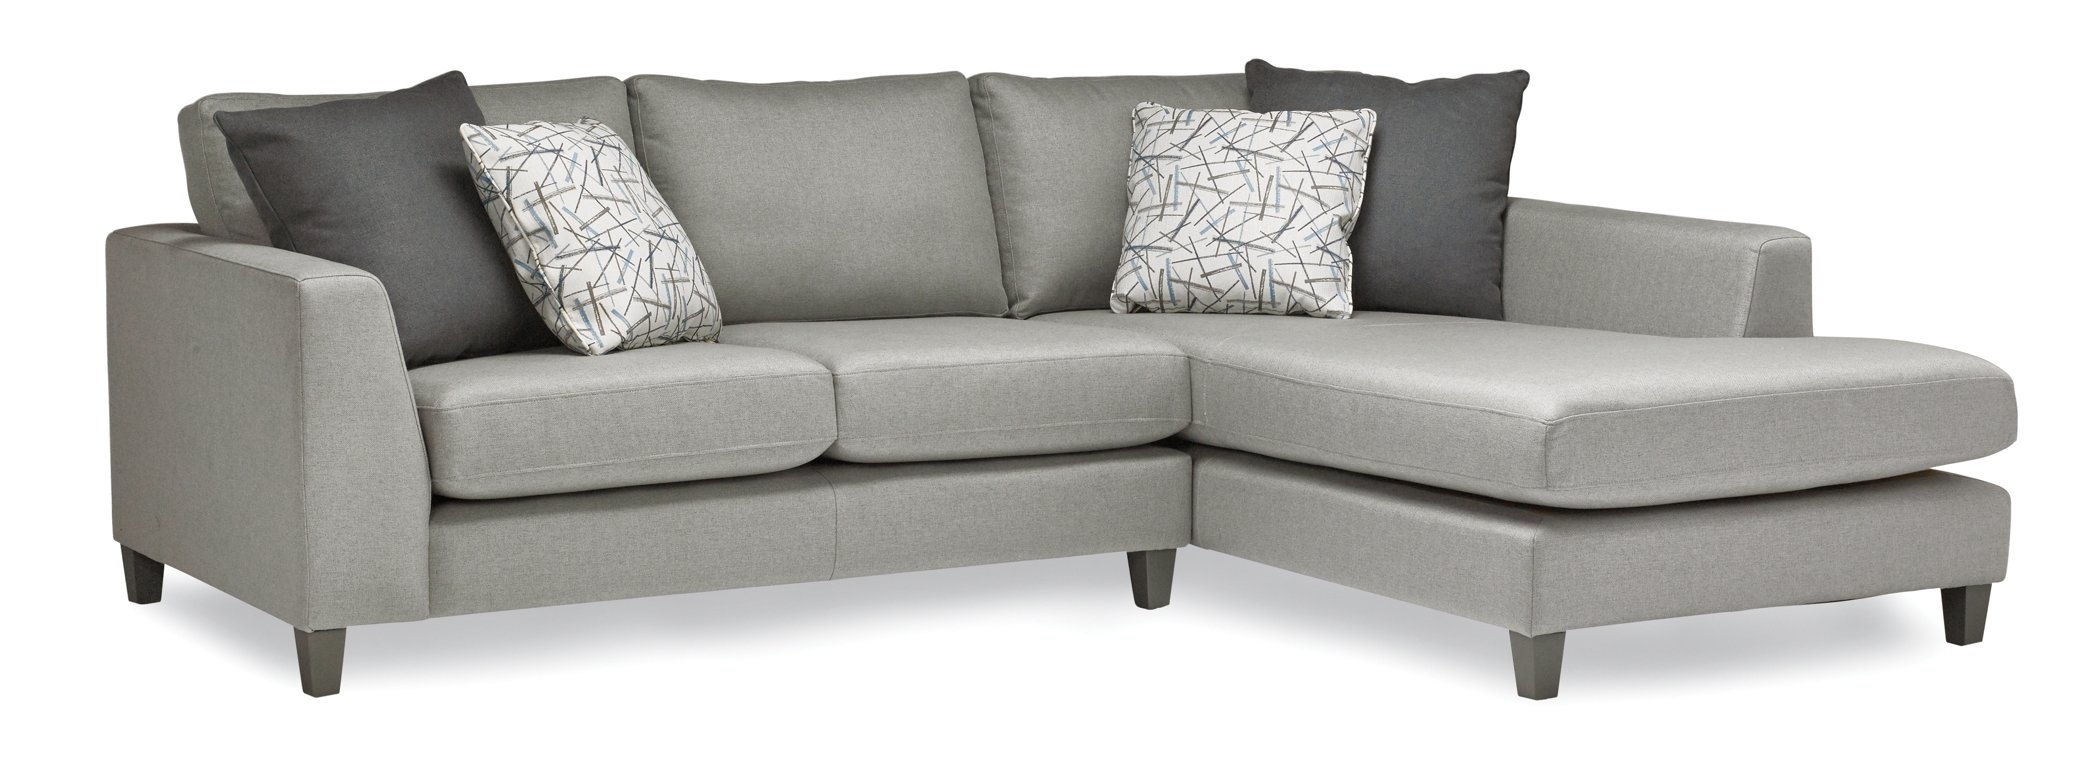 Sofas To Go Oscar Sectional & Reviews | Wayfair With Nanaimo Sectional Sofas (View 9 of 10)